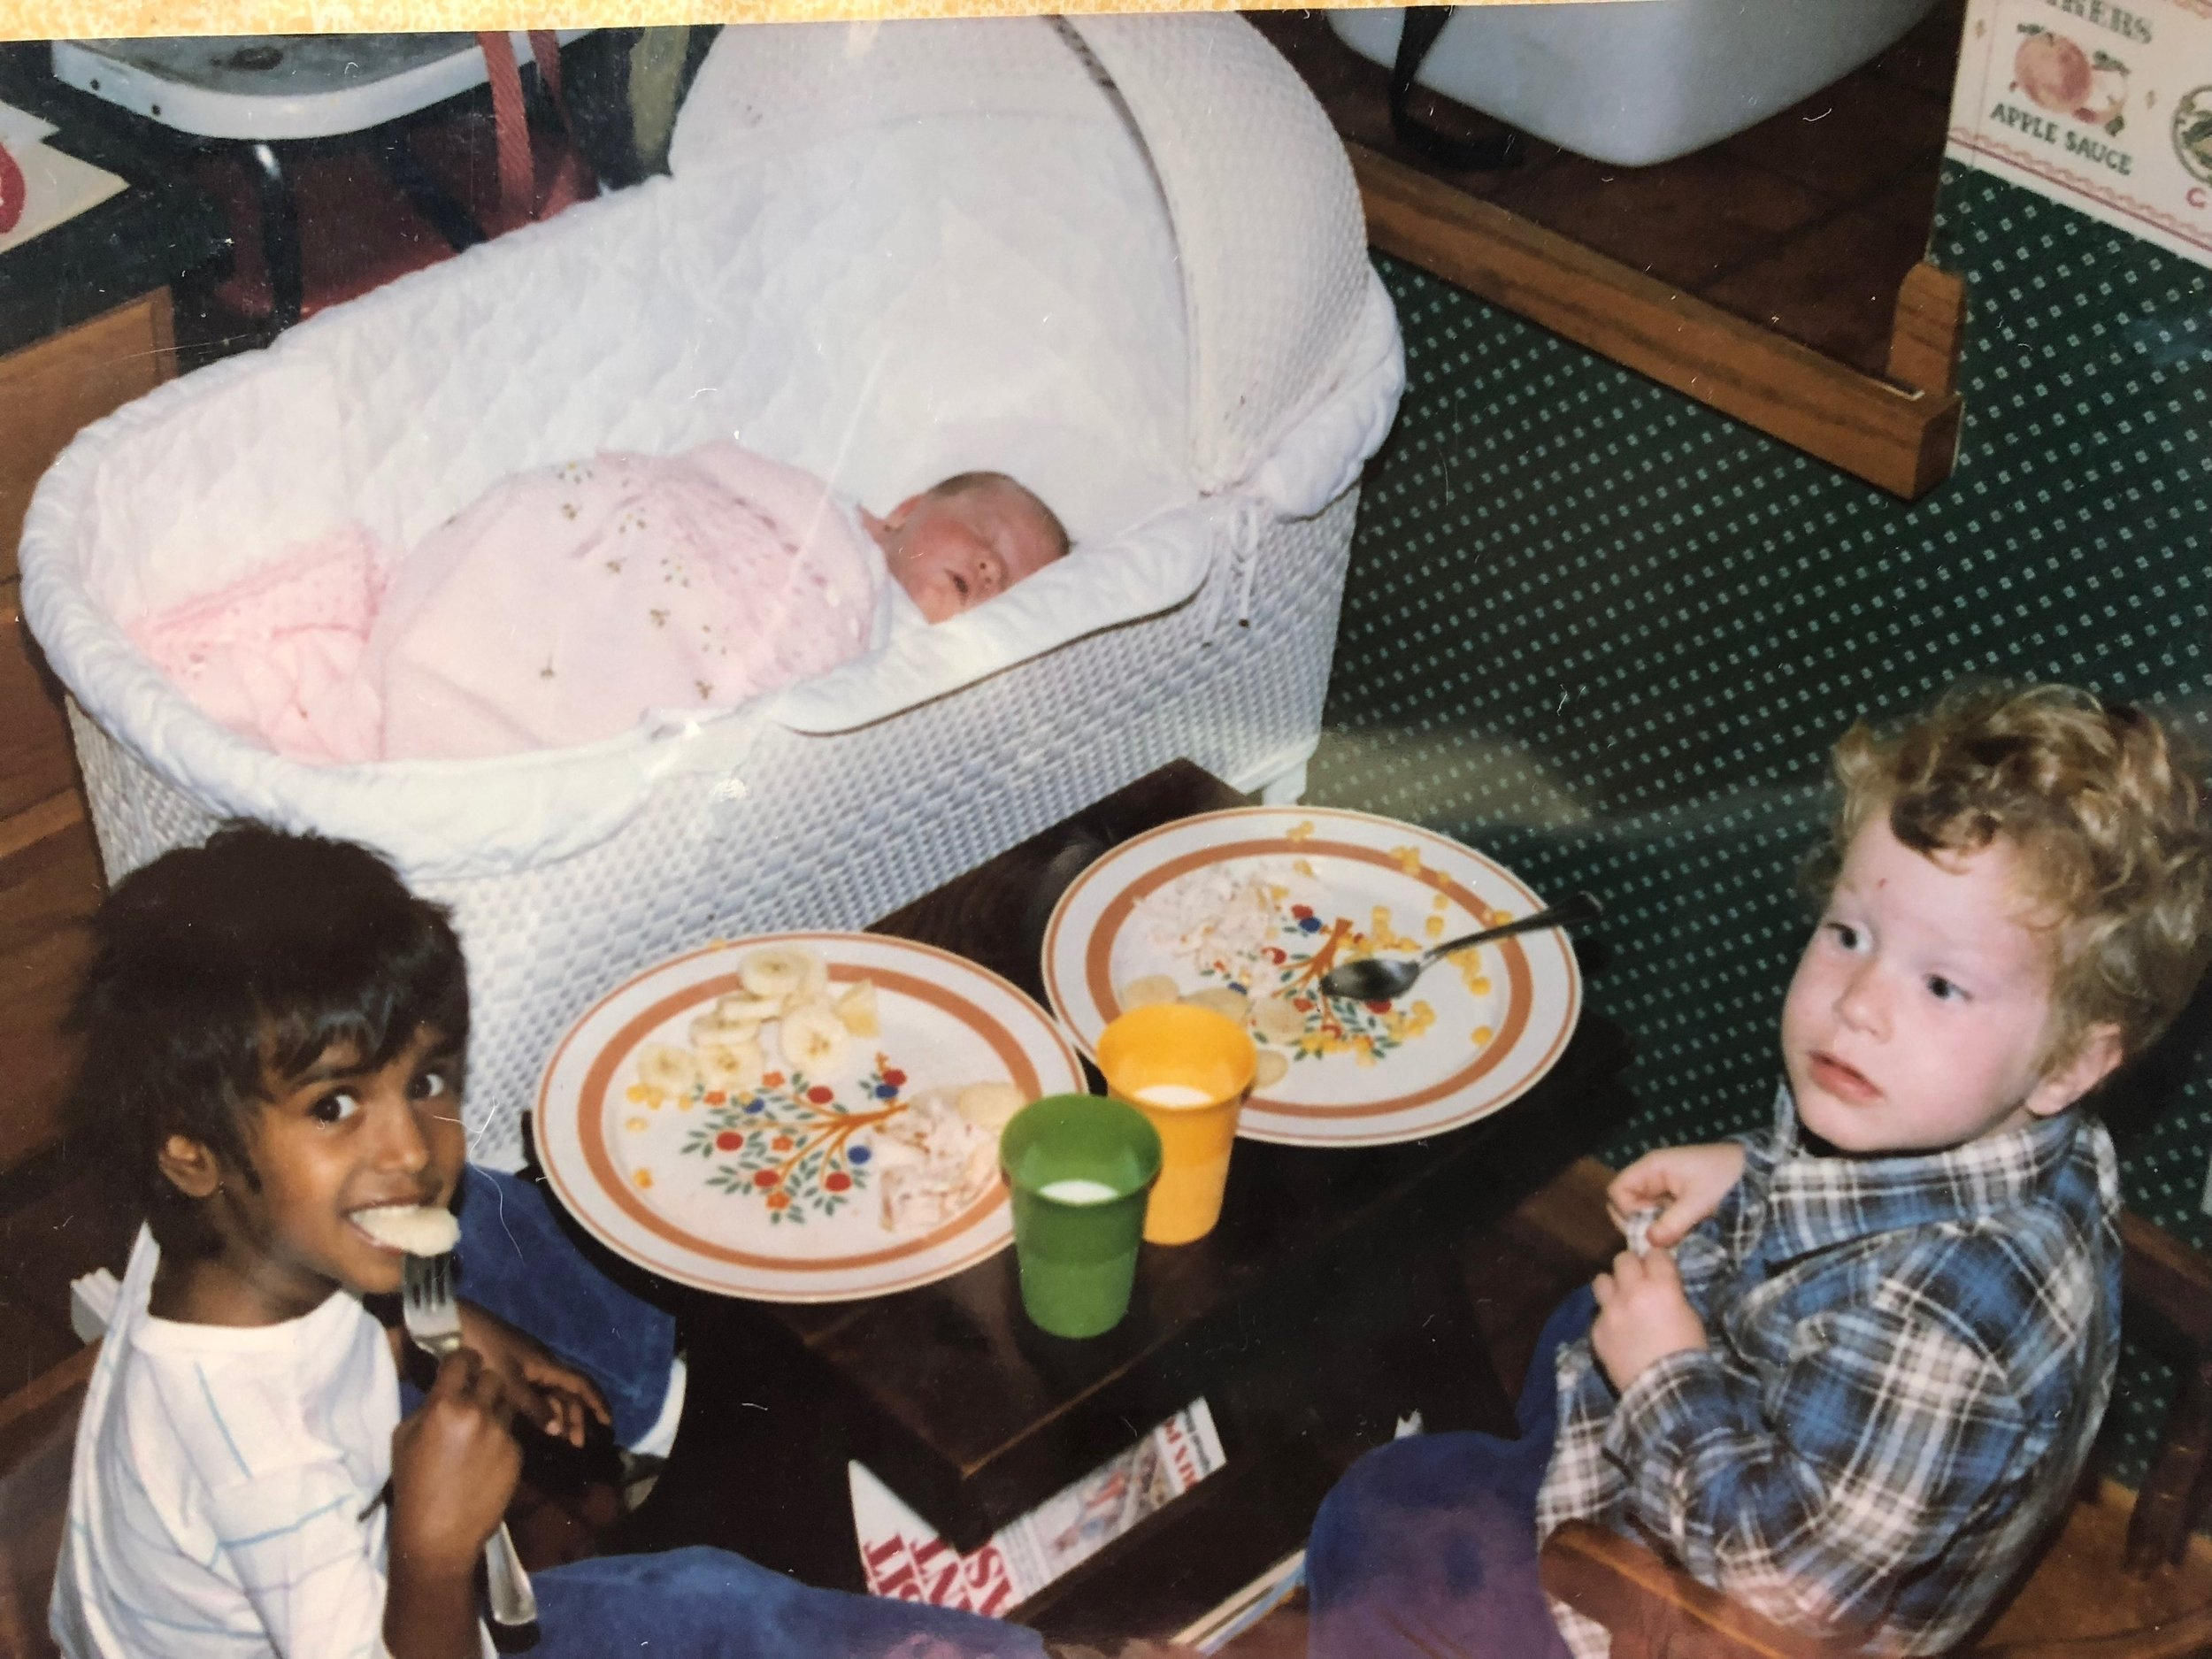 When I was born and came home from the hospital, Sarah and my brother Nathan wanted to eat dinner next to my crib.